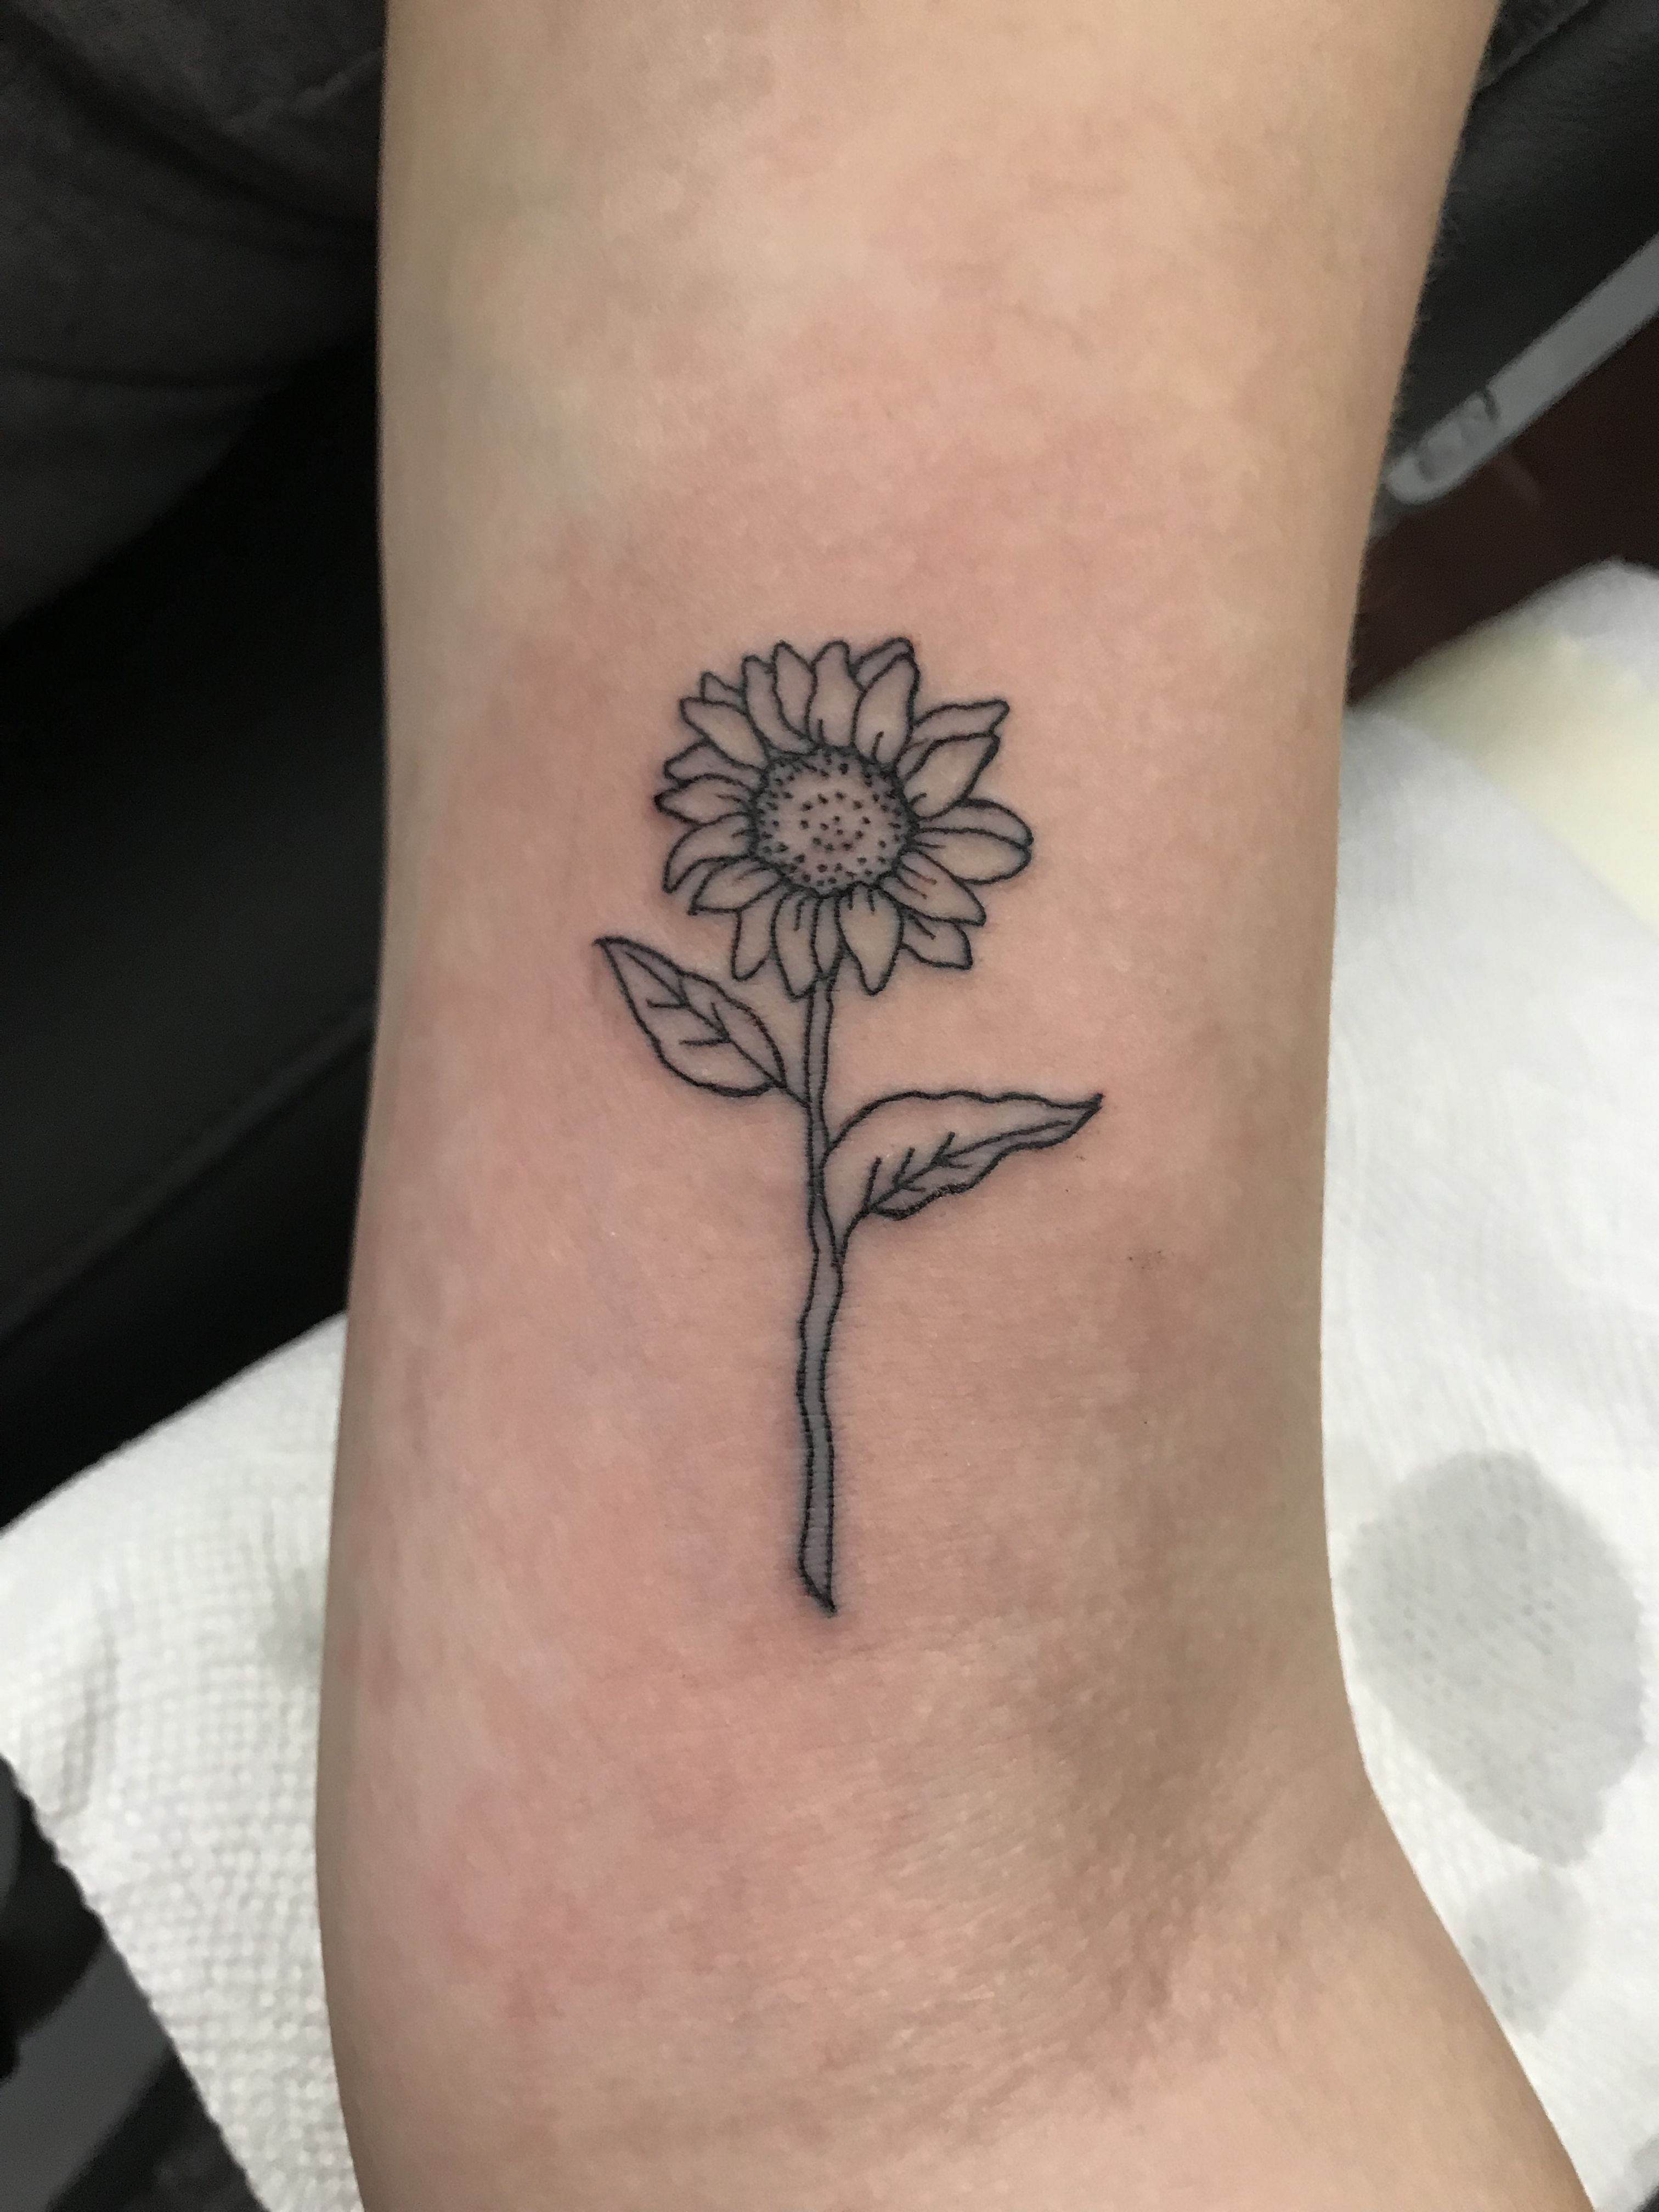 Kind Of In Love With This Tattoo Also Cammie Is The One Who Has It And She S Amazing With Images Rainbow Tattoos Tattoos White Tattoo